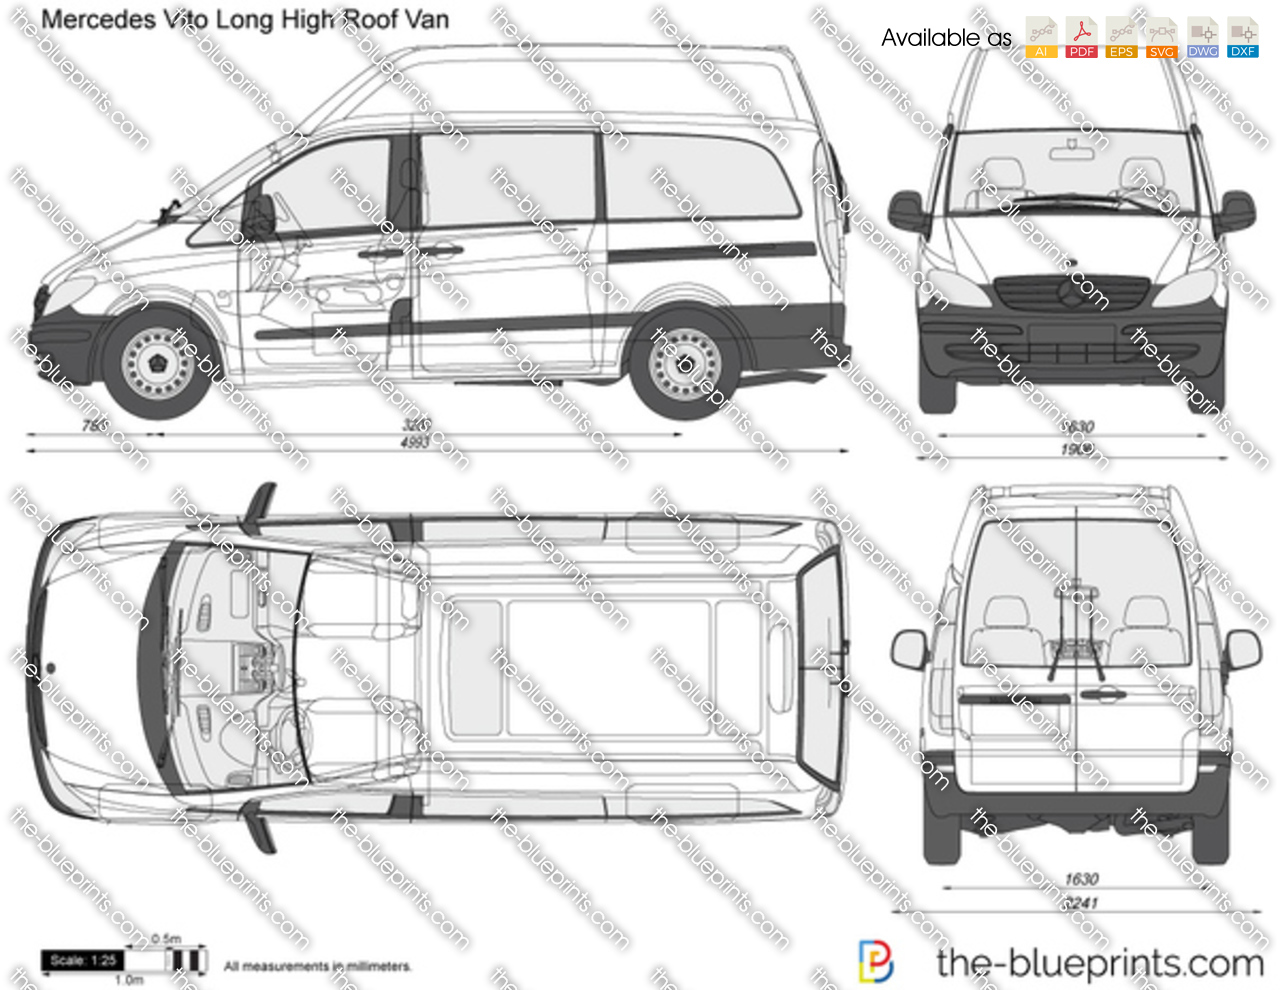 Mercedes Benz Vito Long High Roof Van Vector Drawing